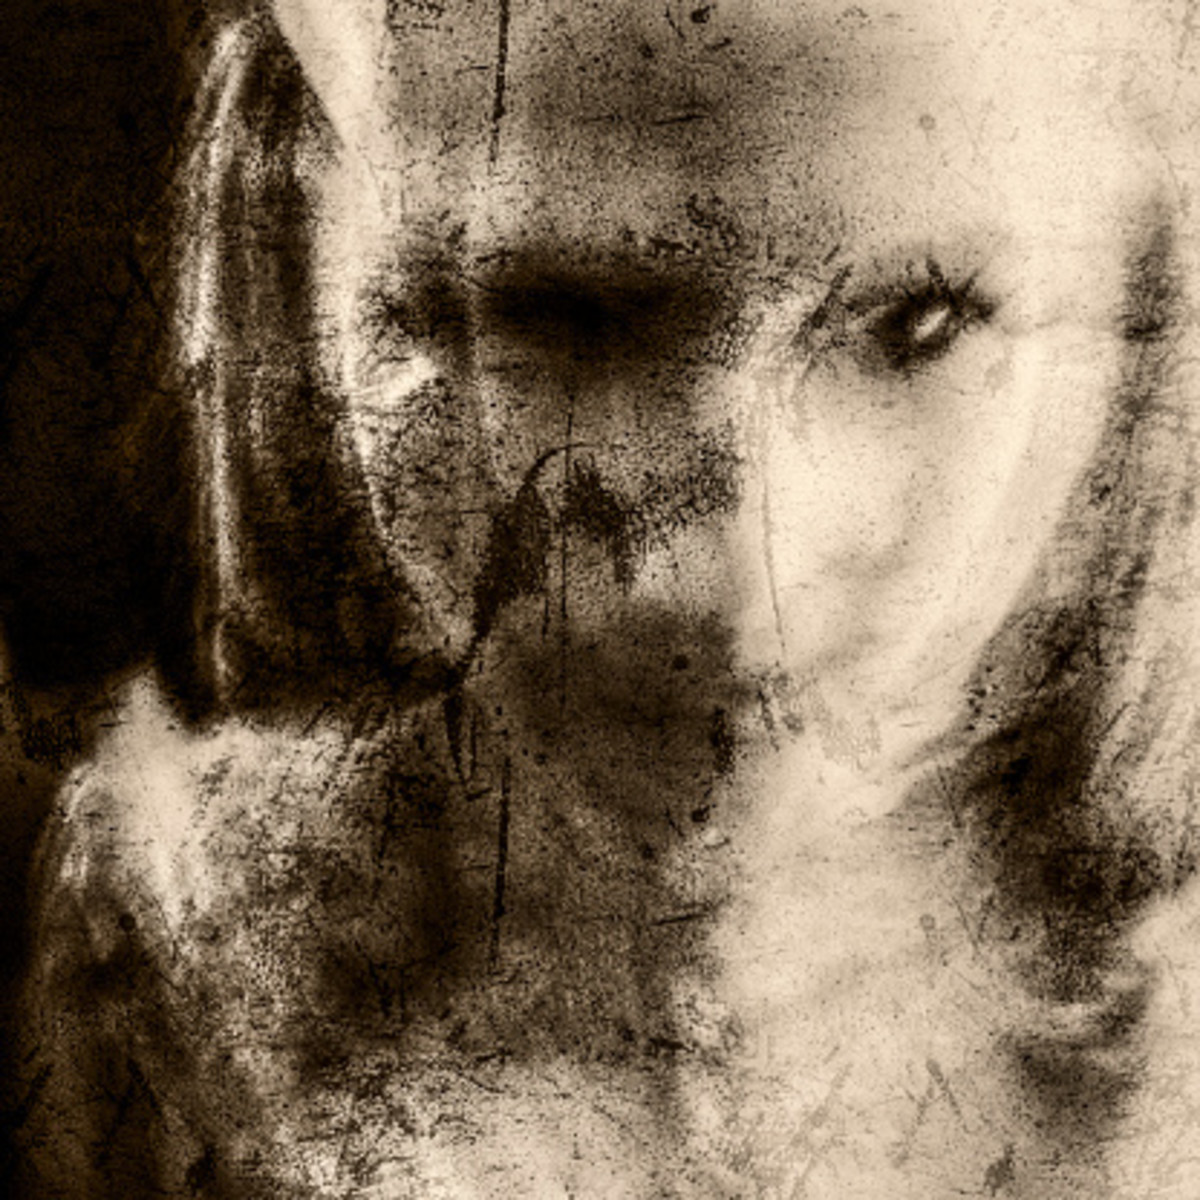 ghost-patient-the-haunted-ward